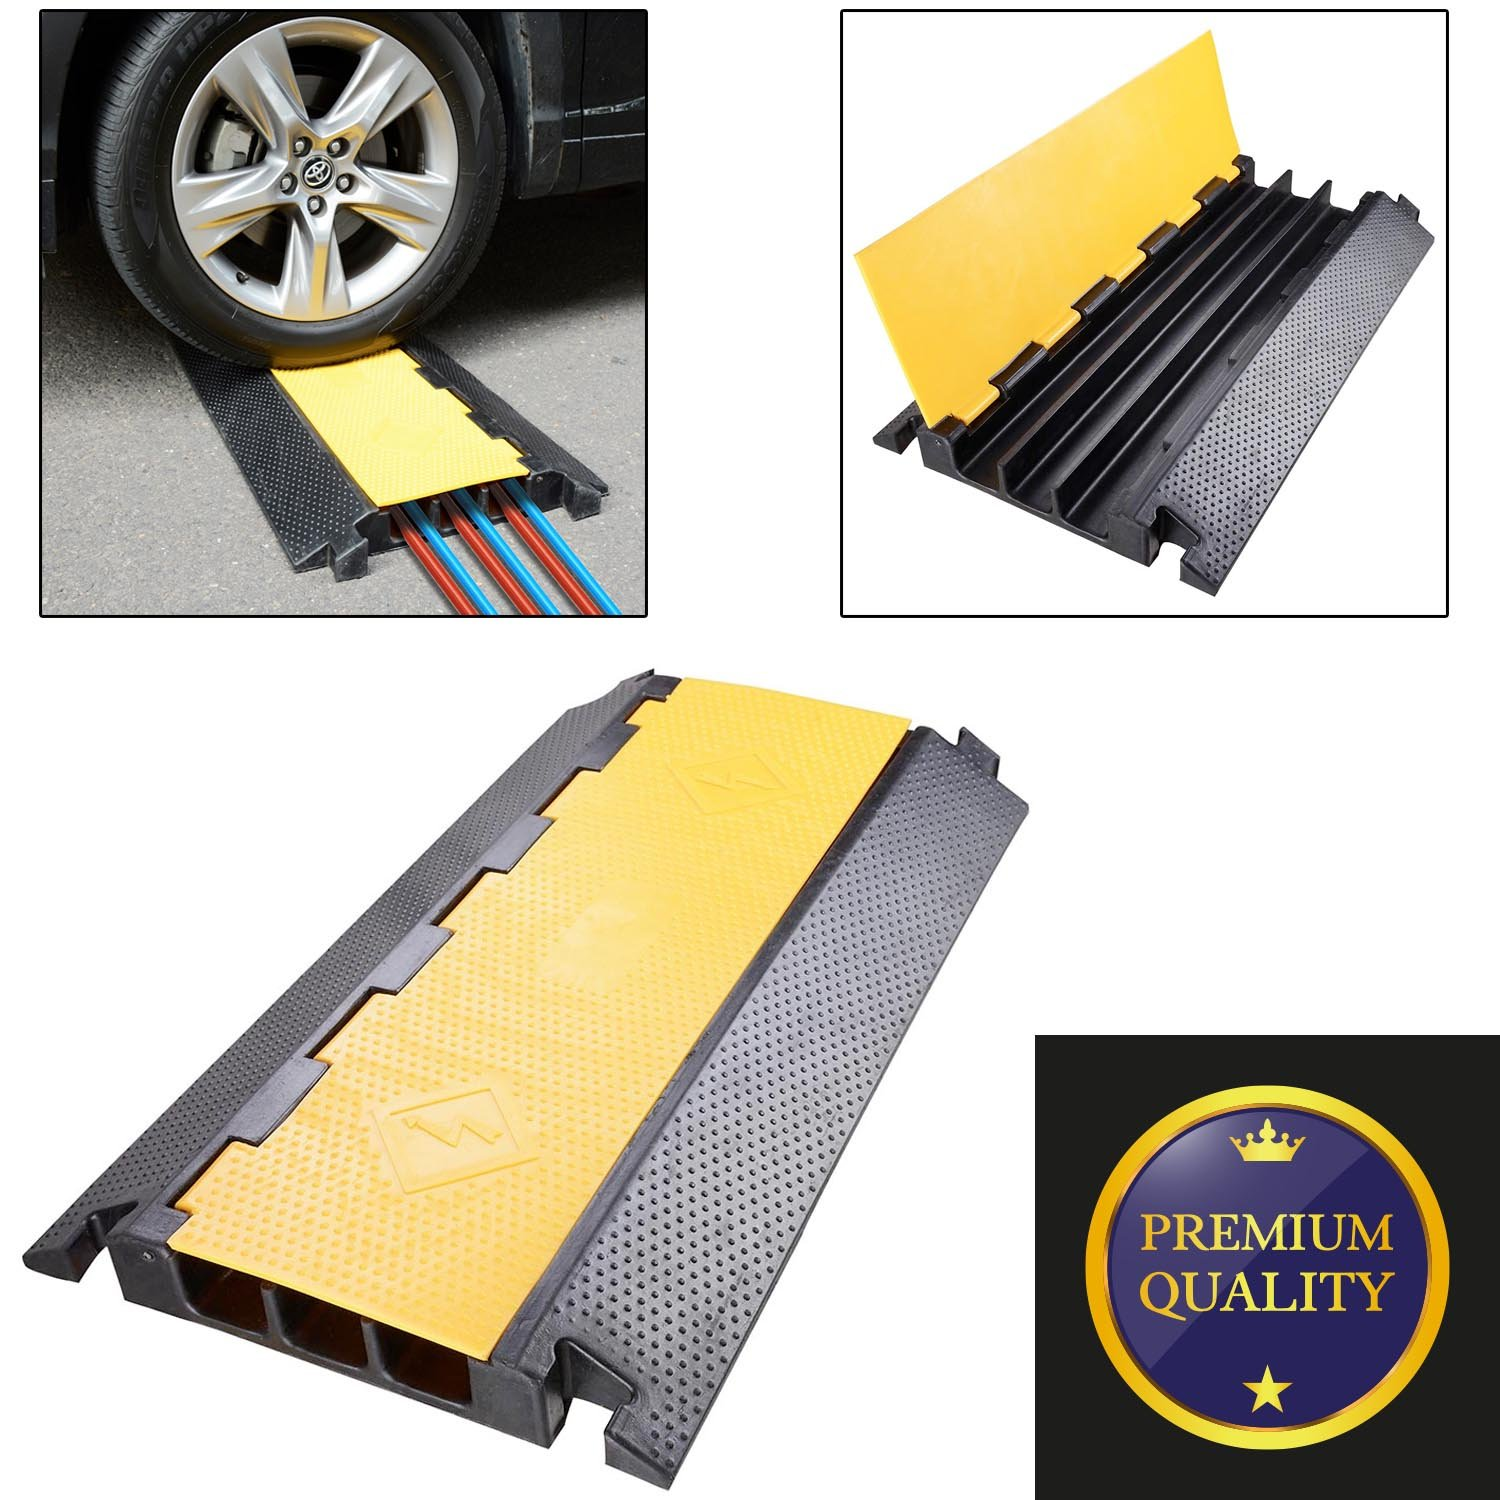 GC Global Direct Channel Warehouse Cable Protector Ramp Traffic Wire Cover (3-channel black/yellow) by GC Global Direct